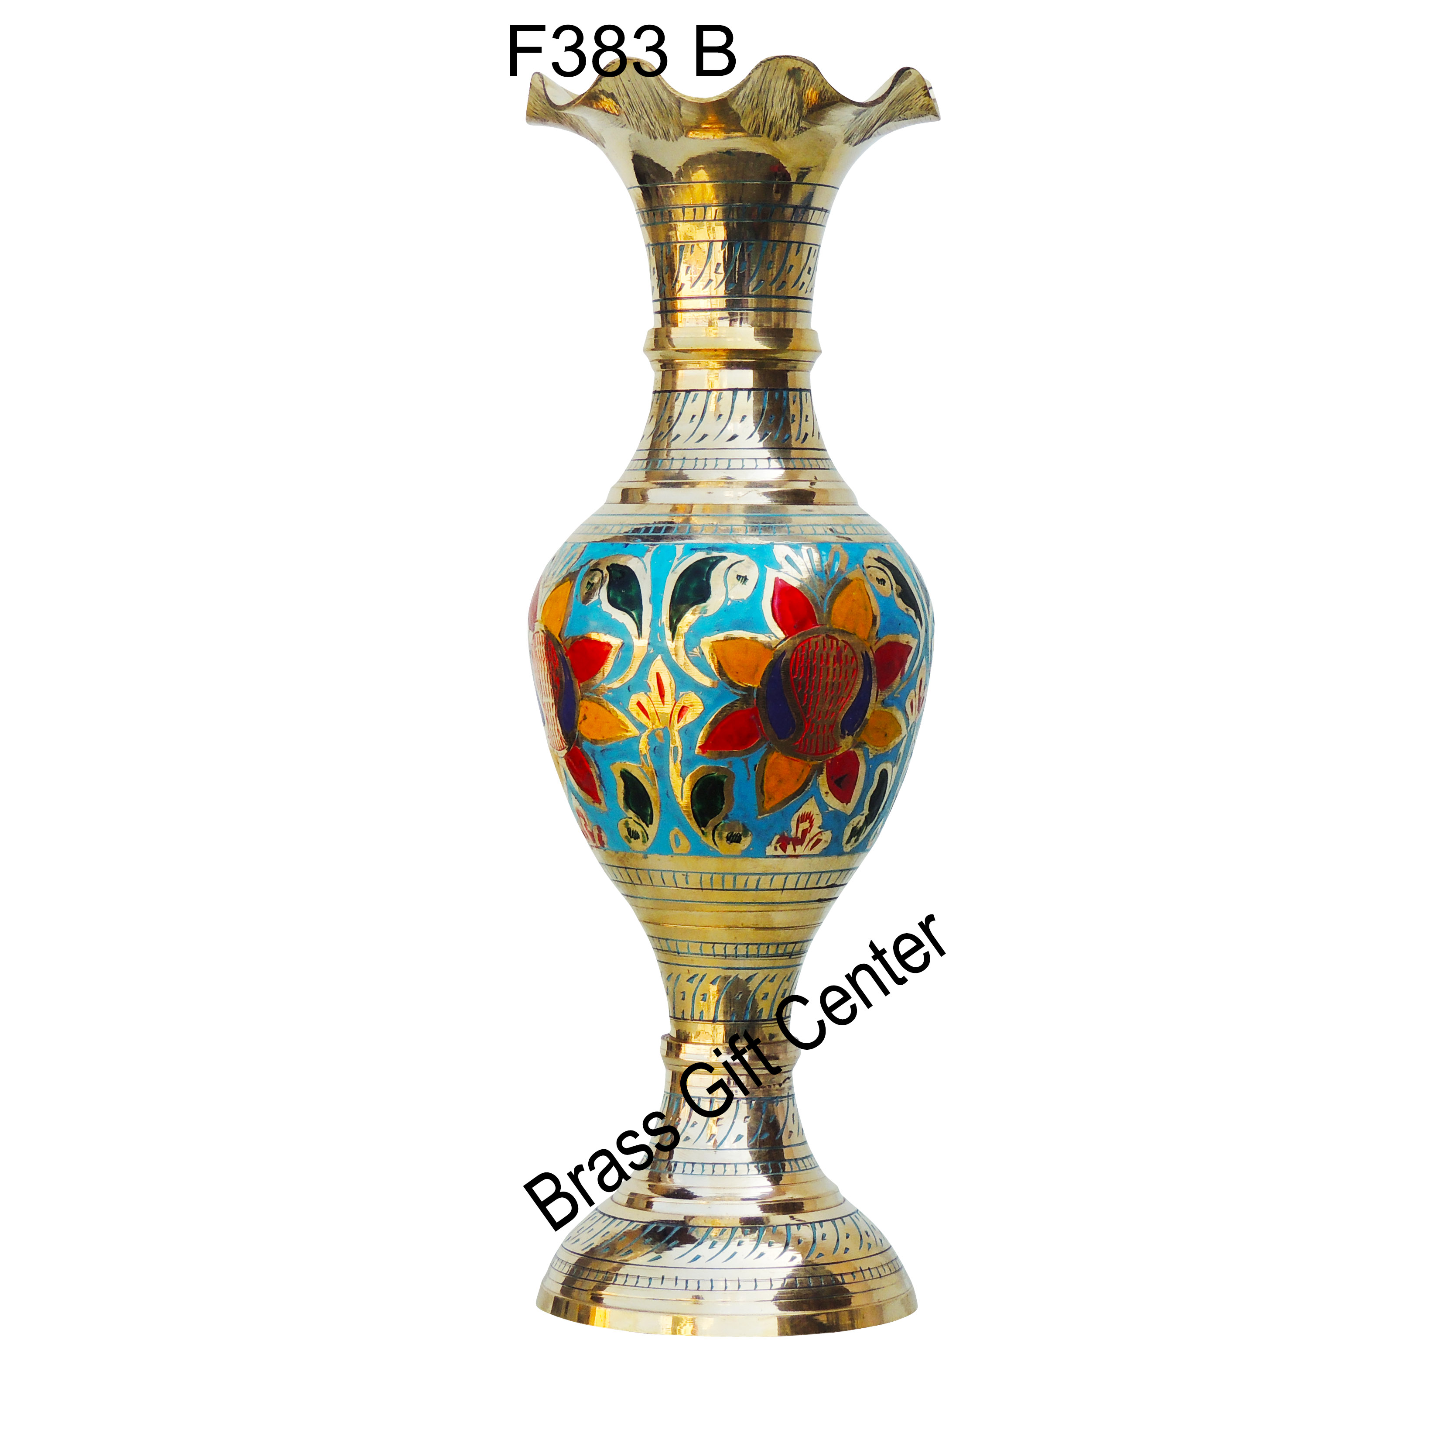 Brass Coloured Flower Vase with handwork - 4412 Inch  F383 B